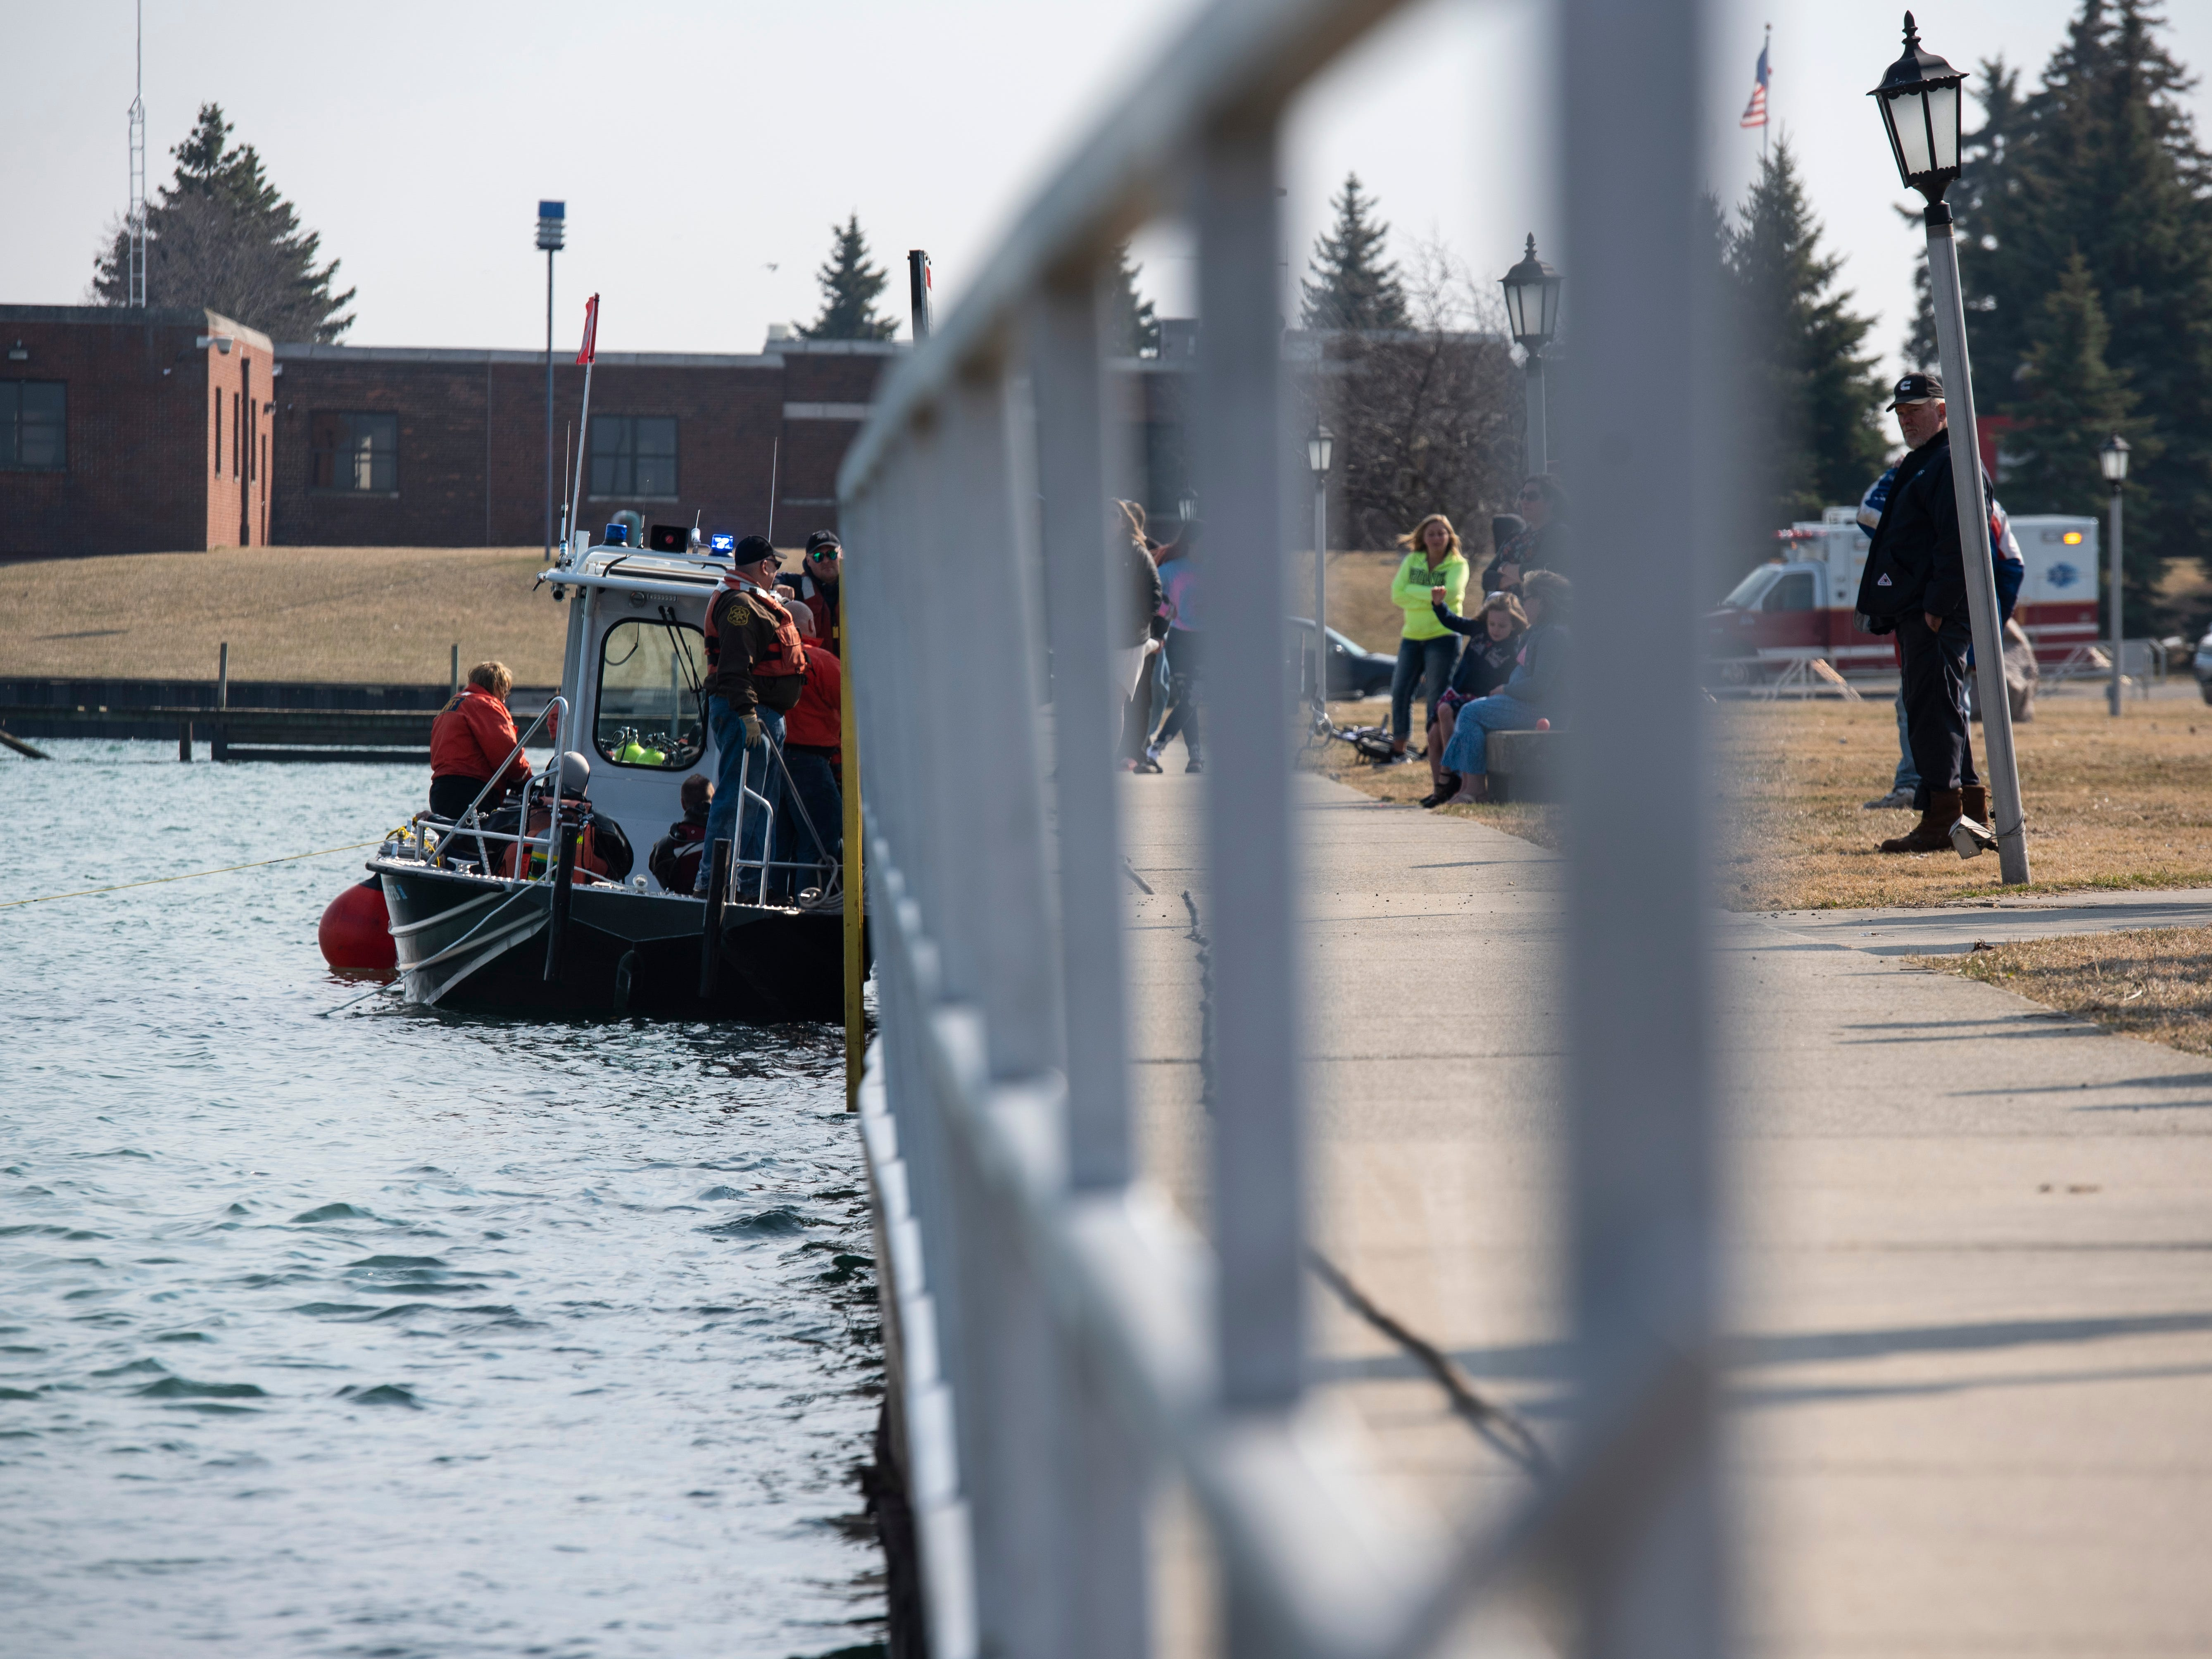 Crews work to remove a car from the St. Clair River near Junction Buoy in Marysville Saturday, April 6, 2019. The driver went to adjust the parking of the vehicle, and it rolled into the river. The vehicle floated down the river a ways before it and the driver went under. The driver later died.